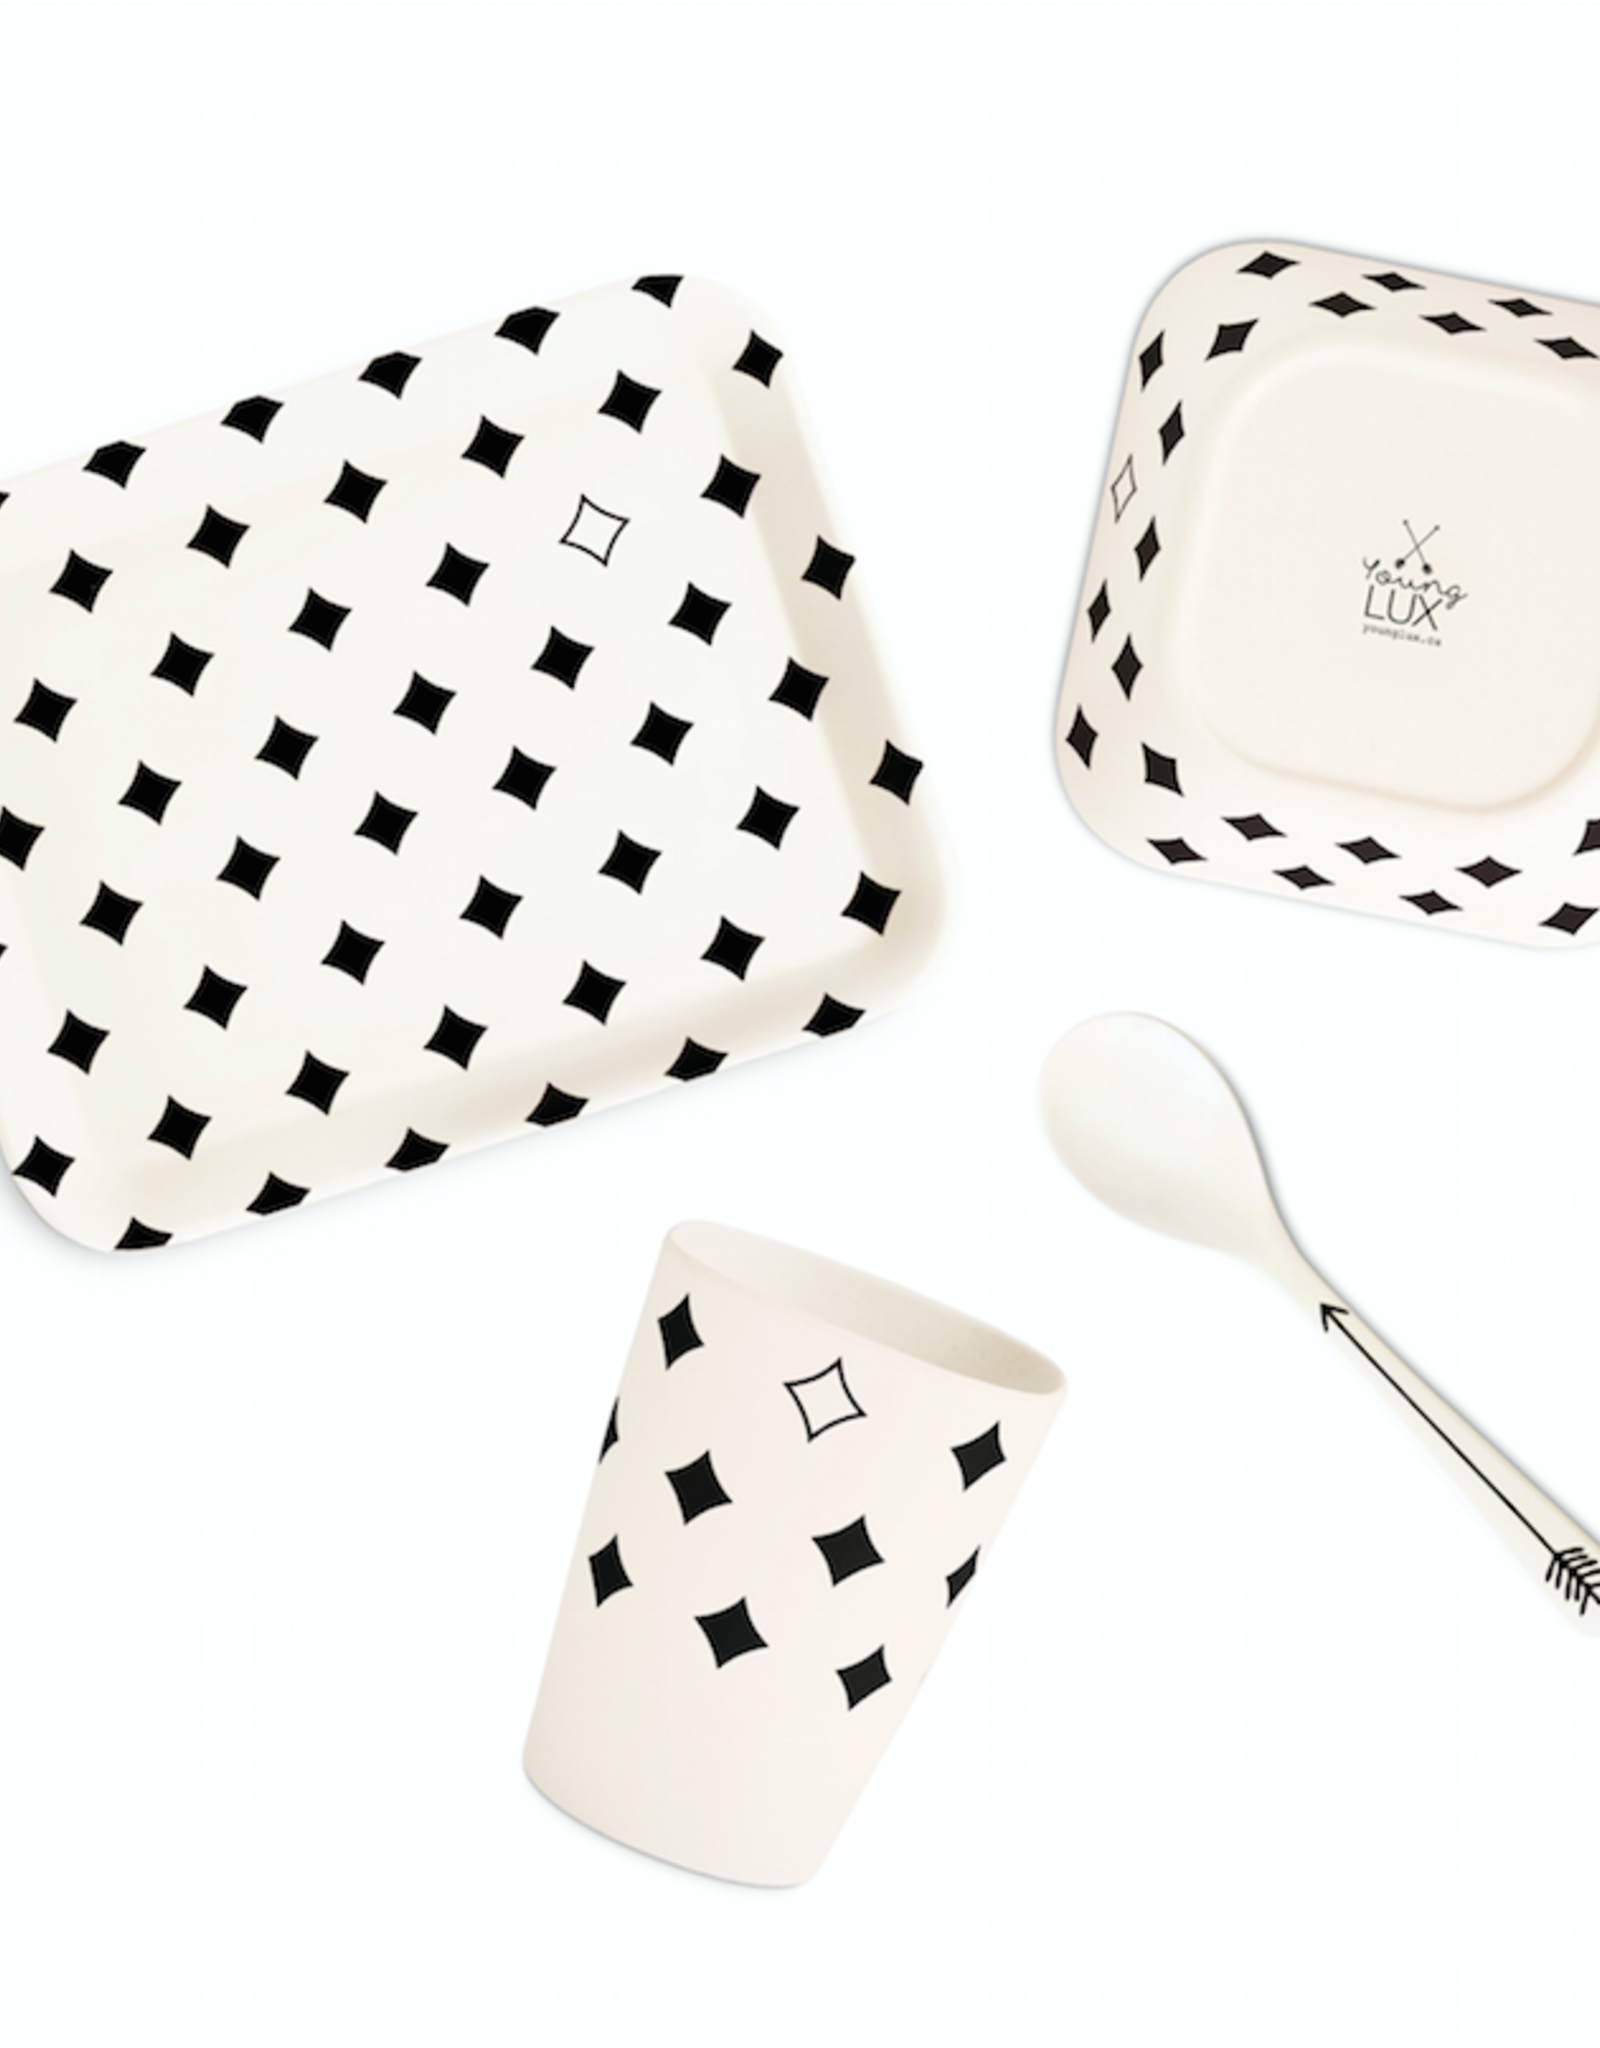 Younglux Bamboo Fiber Tableware gift set